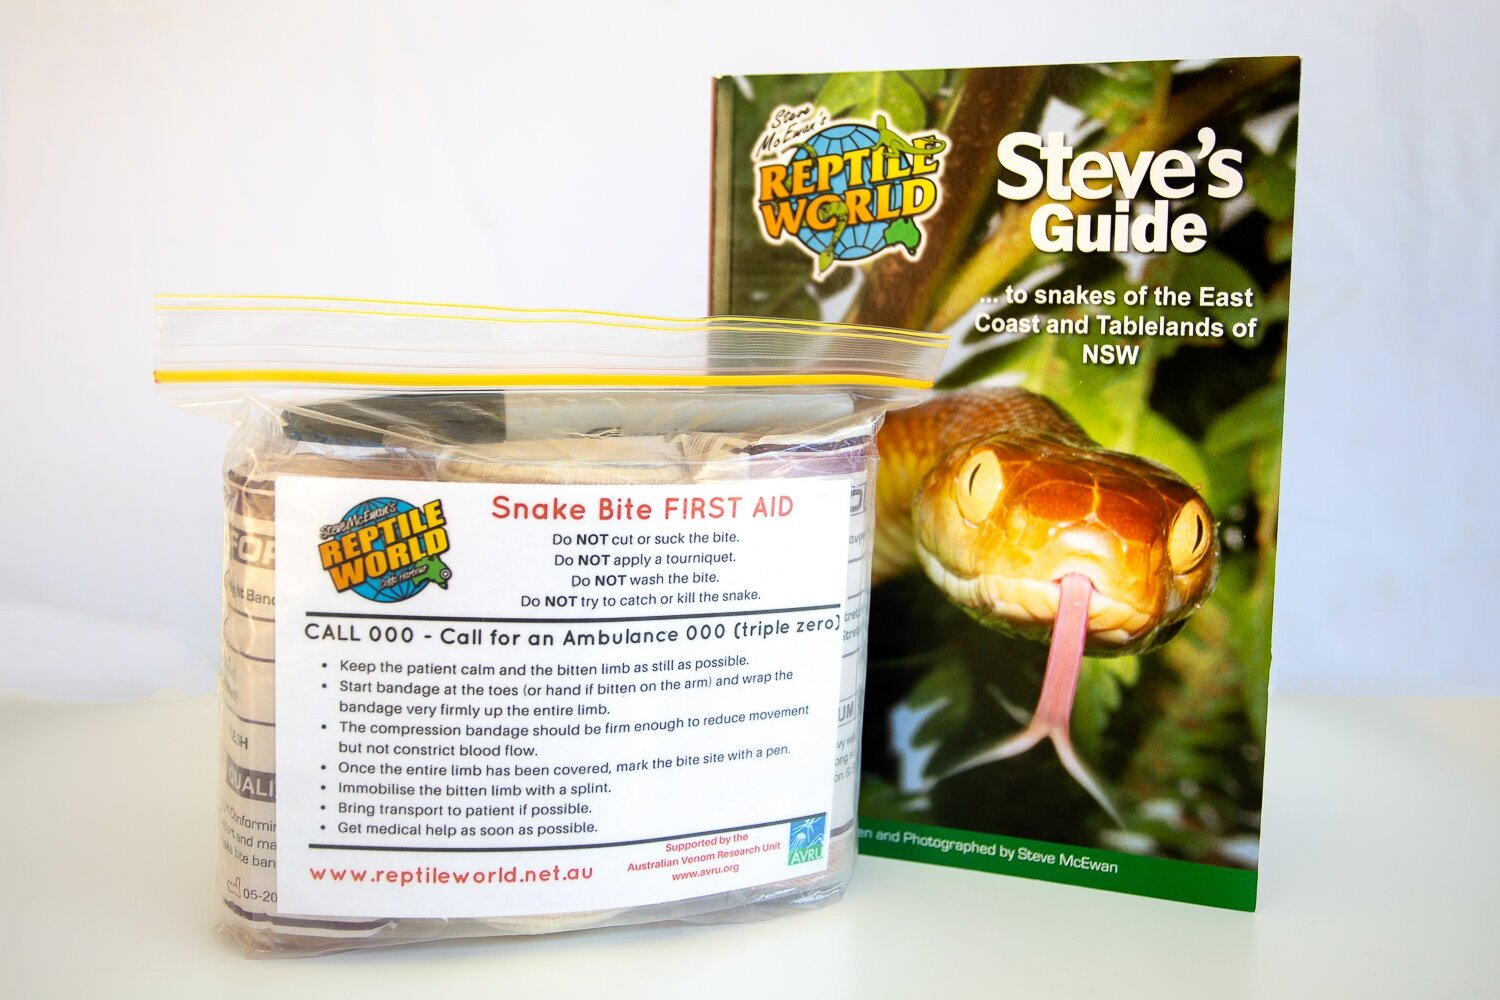 ORDER ONLINE - Order your copy of Steve's Guide to Snakes of the East Coast & Tablelands - NSW and a Snake Bite First Aid Kit today.